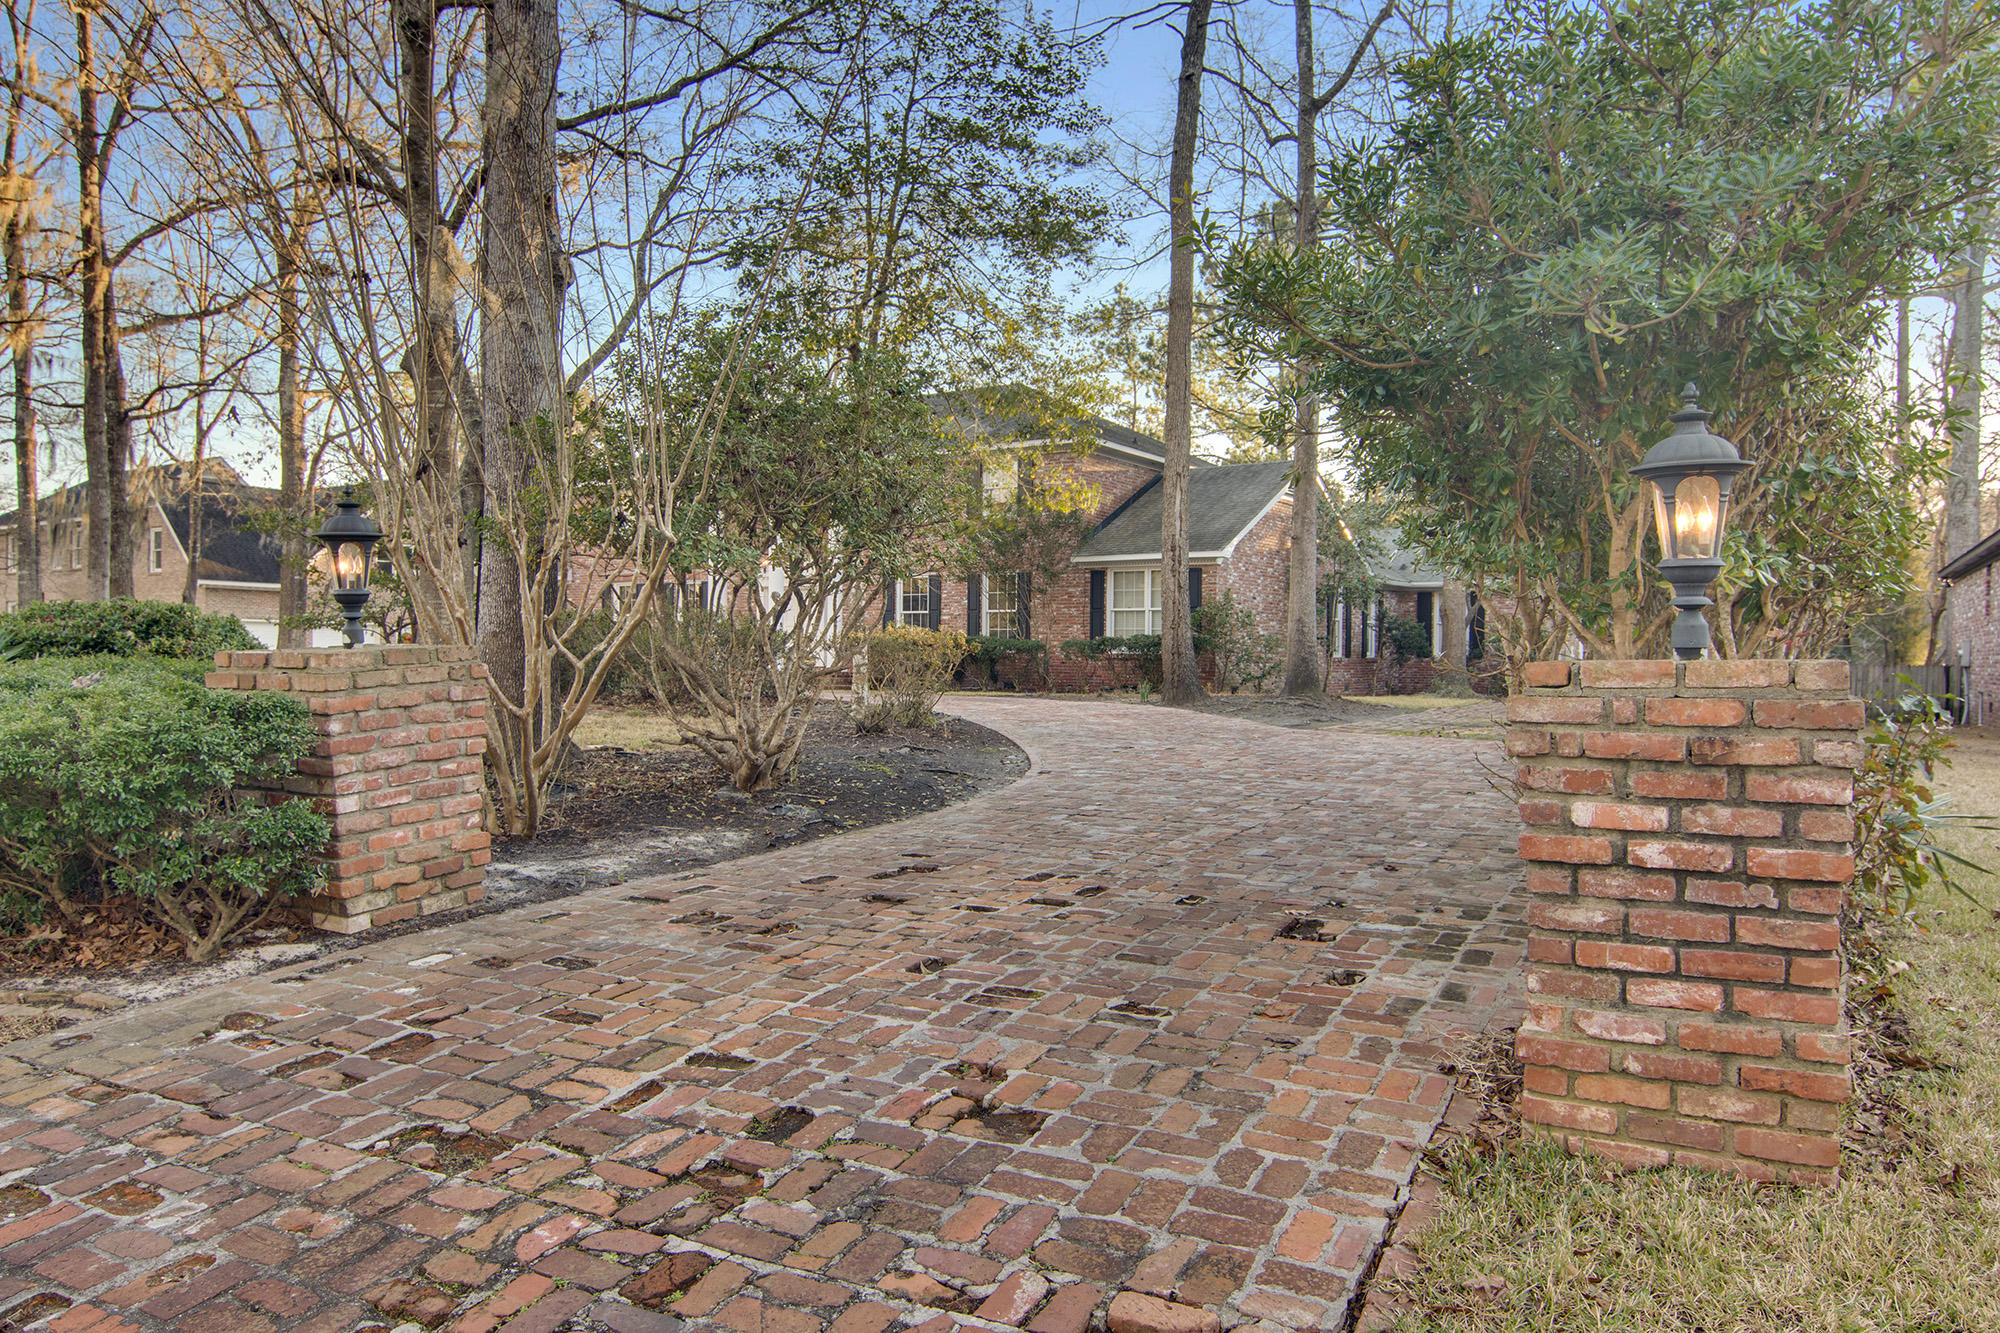 Photo of 510 Mayfield St, Summerville, SC 29485